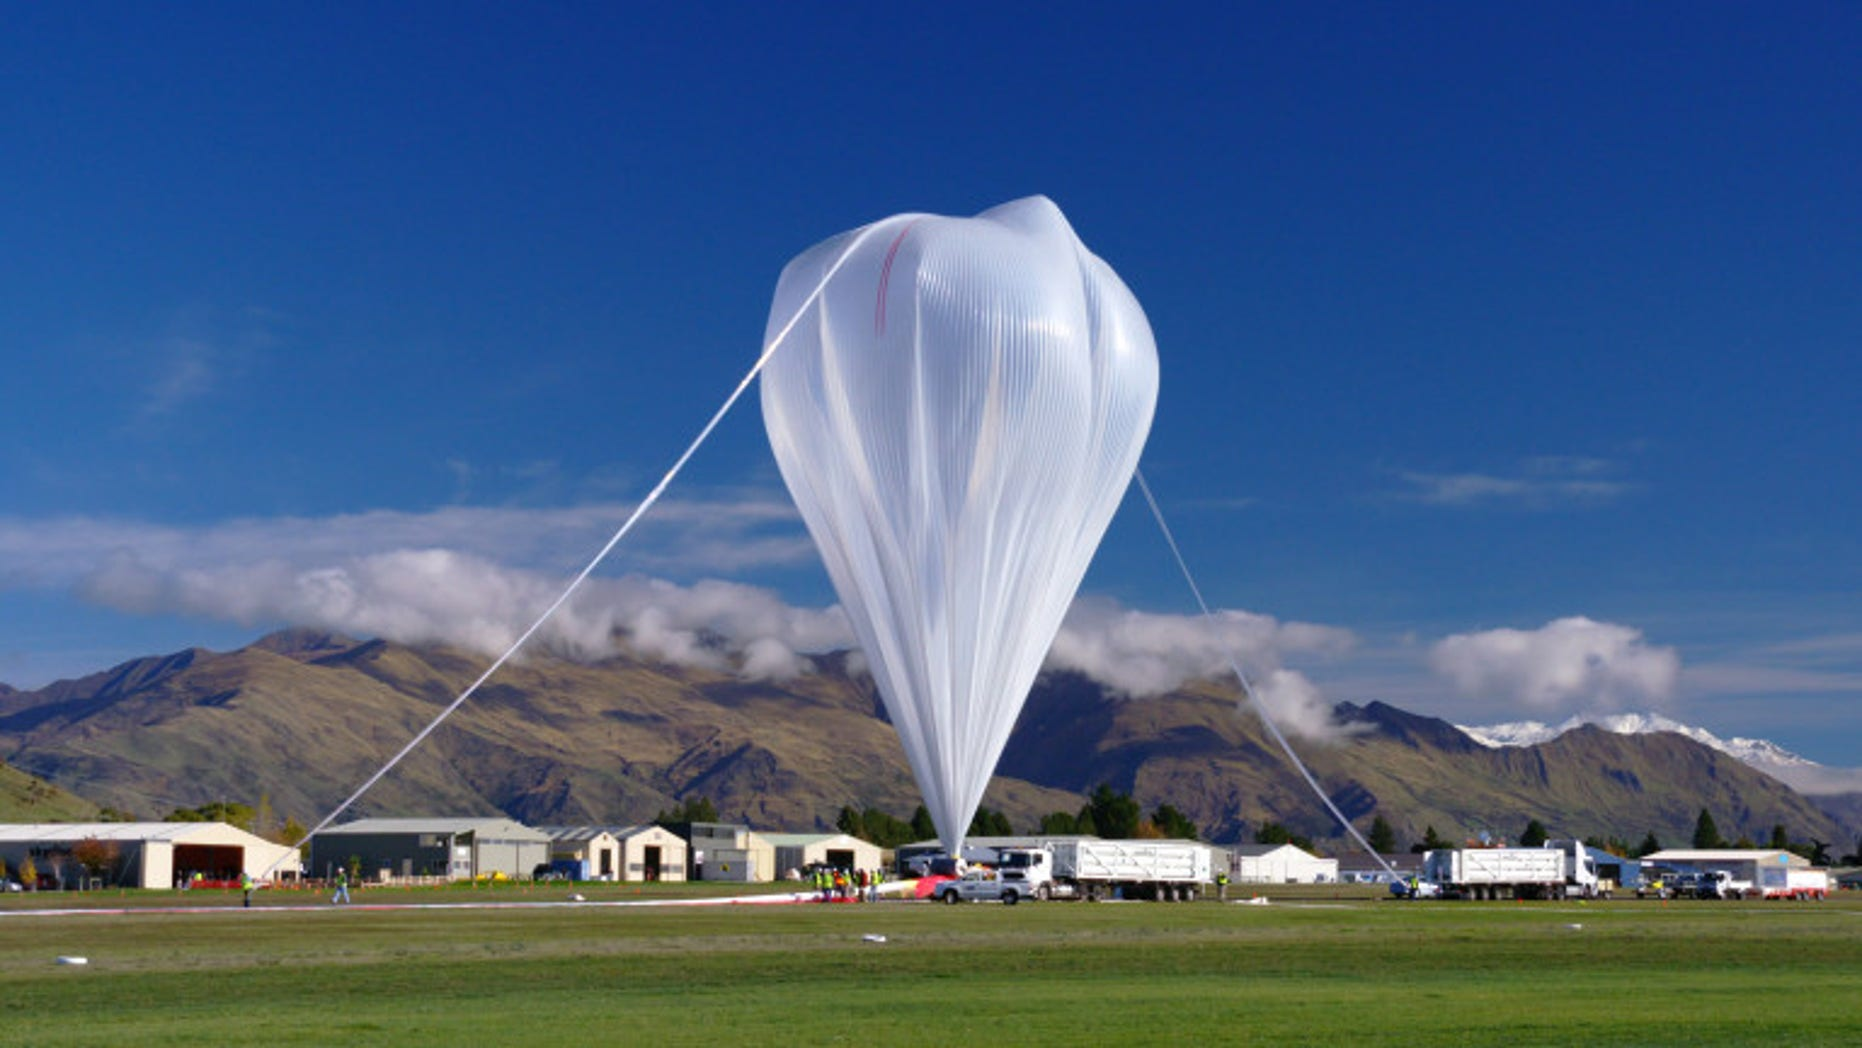 The balloon before launch in New Zealand on May 16, 2016.